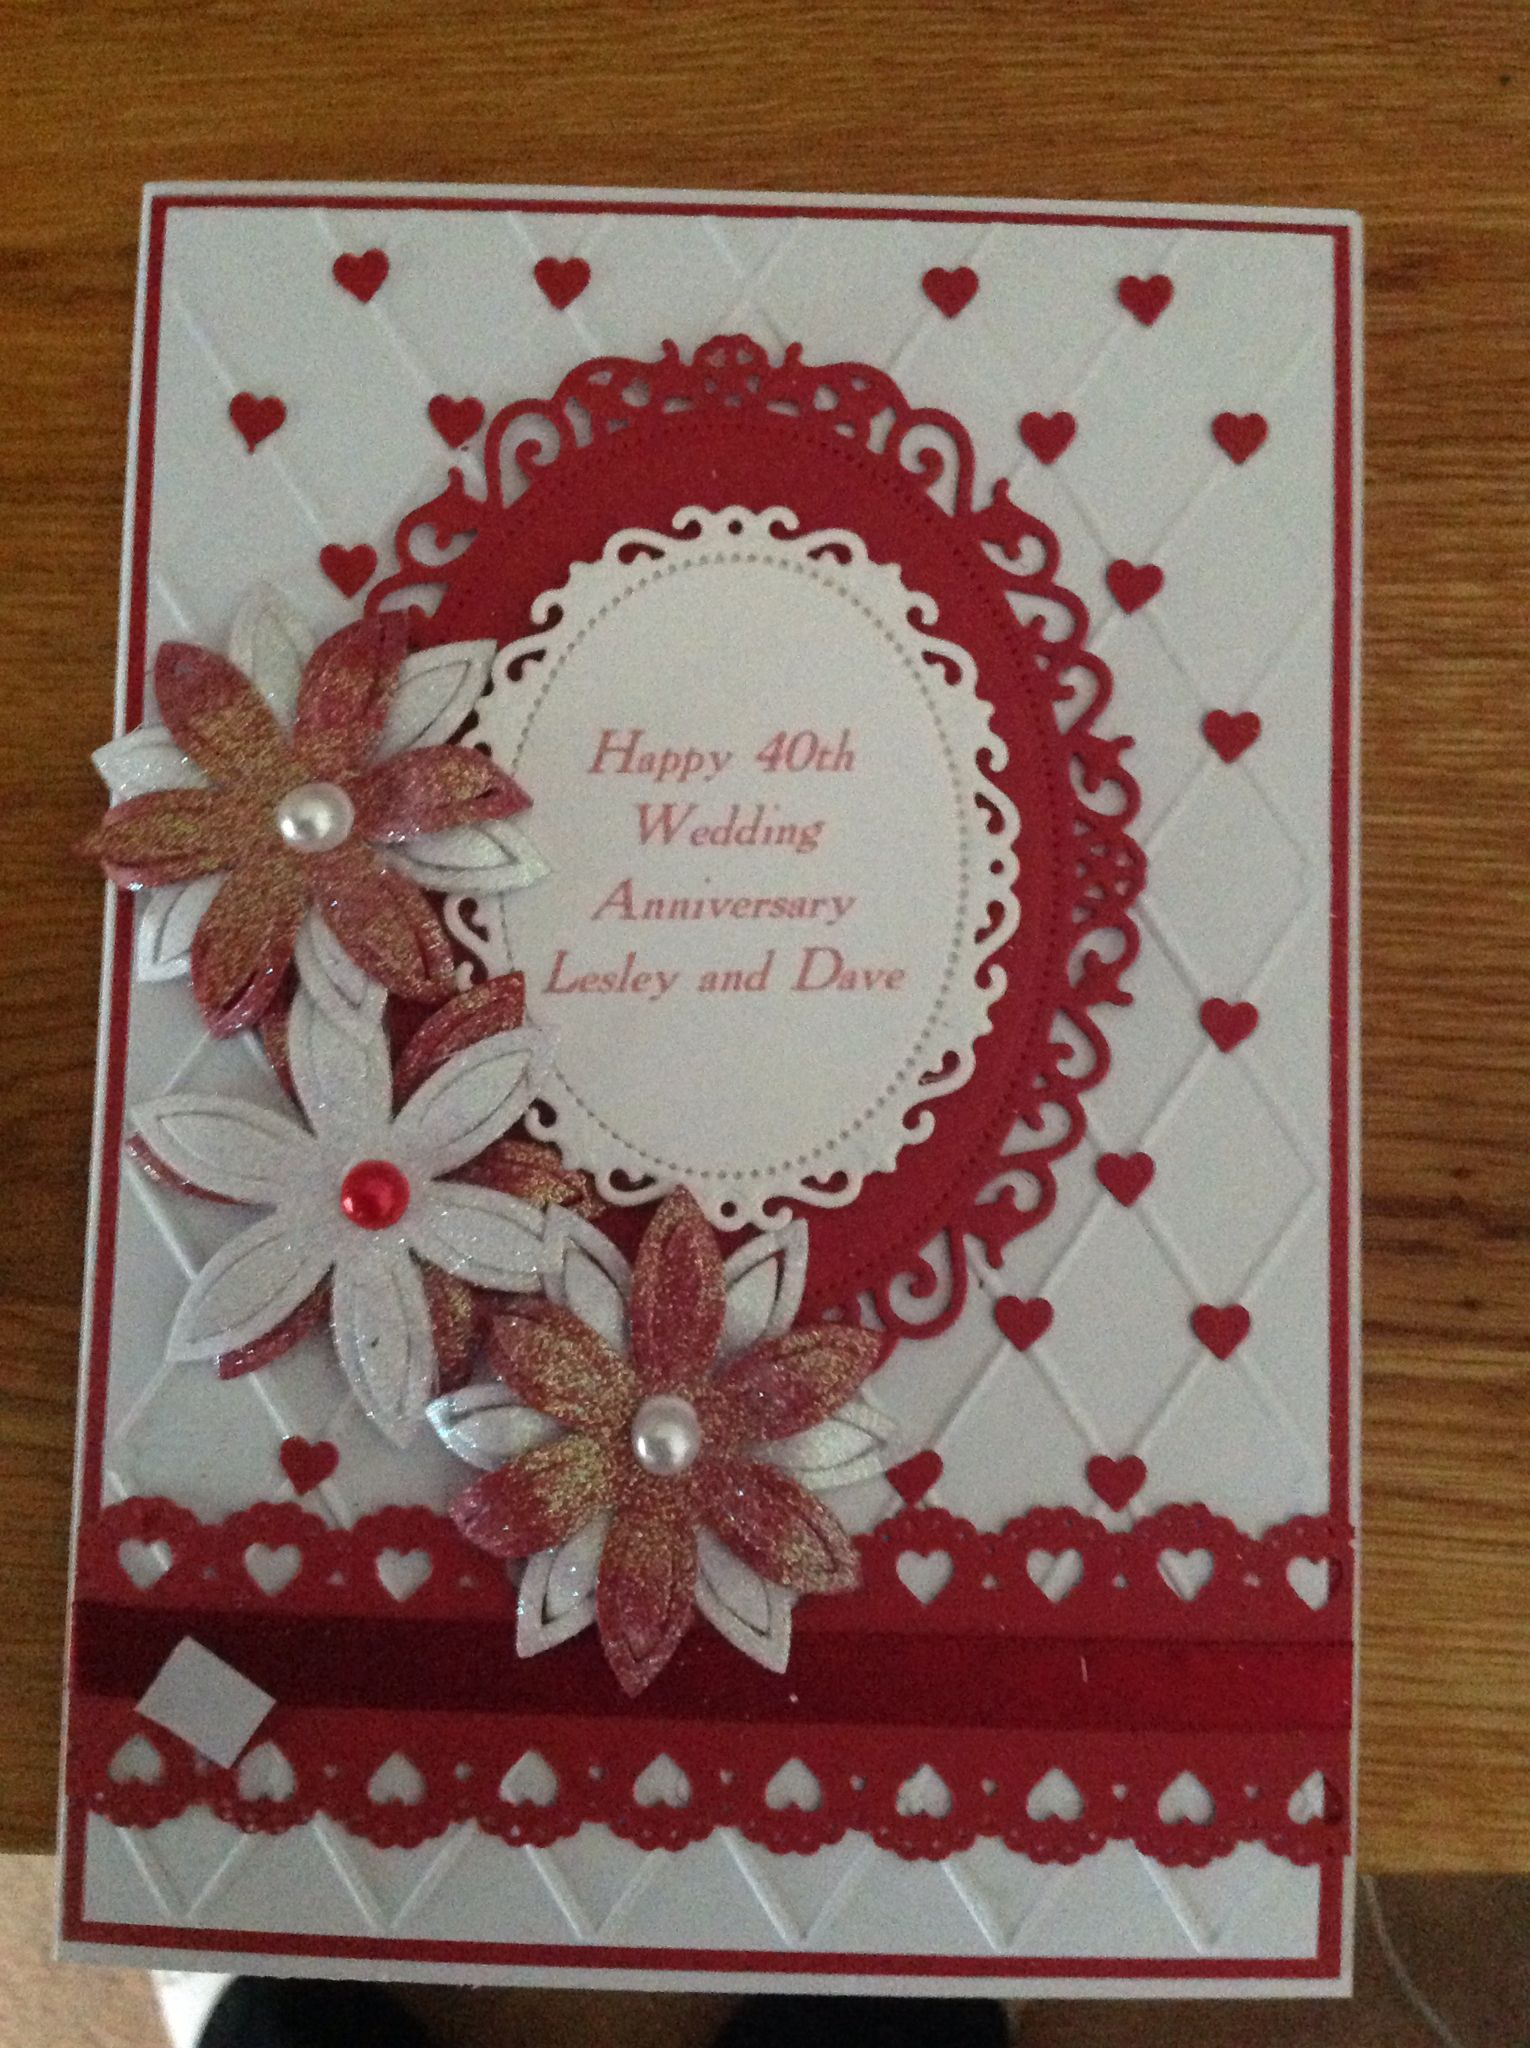 wedding anniversary card pictures%0A Laney u    s Place  Ruby Wedding Card                                  Pinterest   Ruby  wedding  Wedding card and Cards